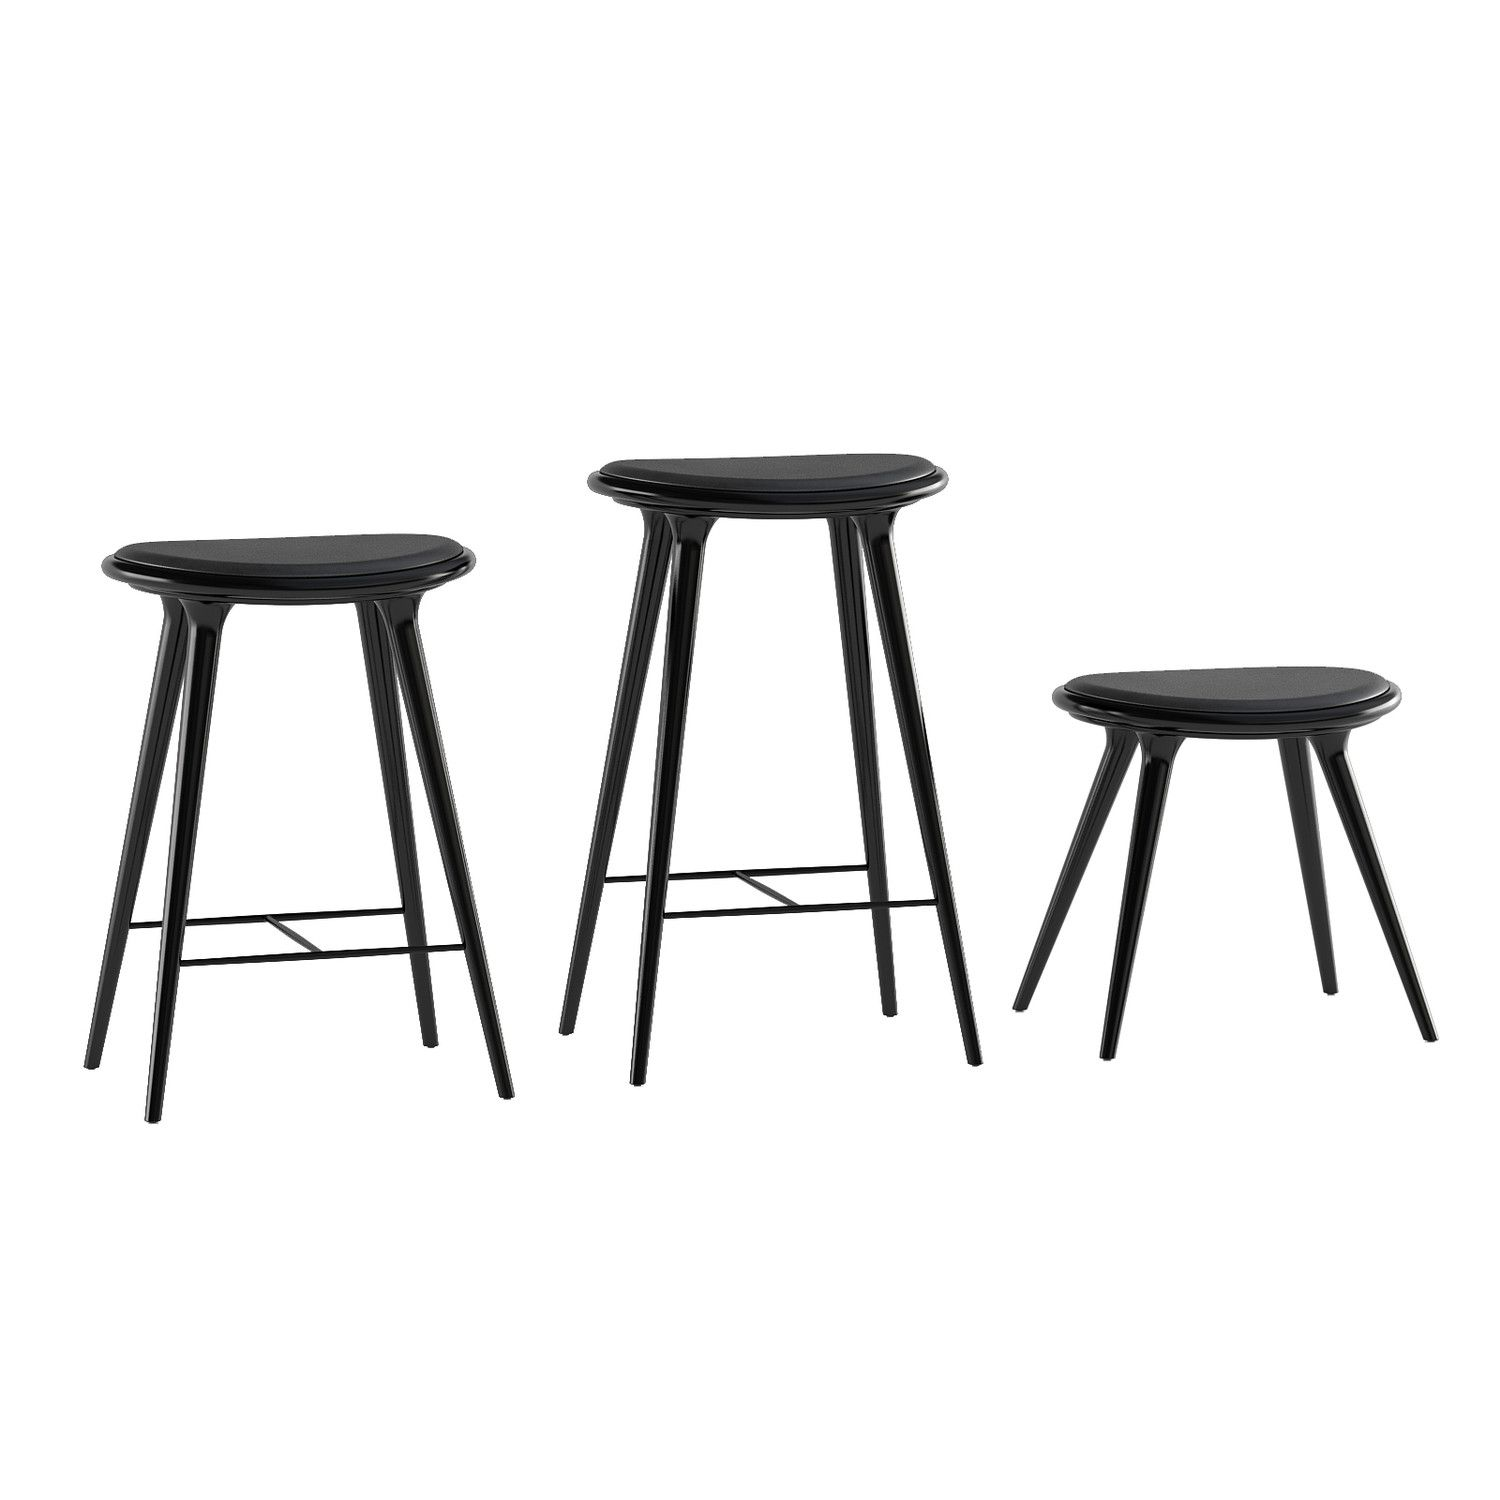 Low Stool Black Hard Wood By Space/ dk :) | High stool ...